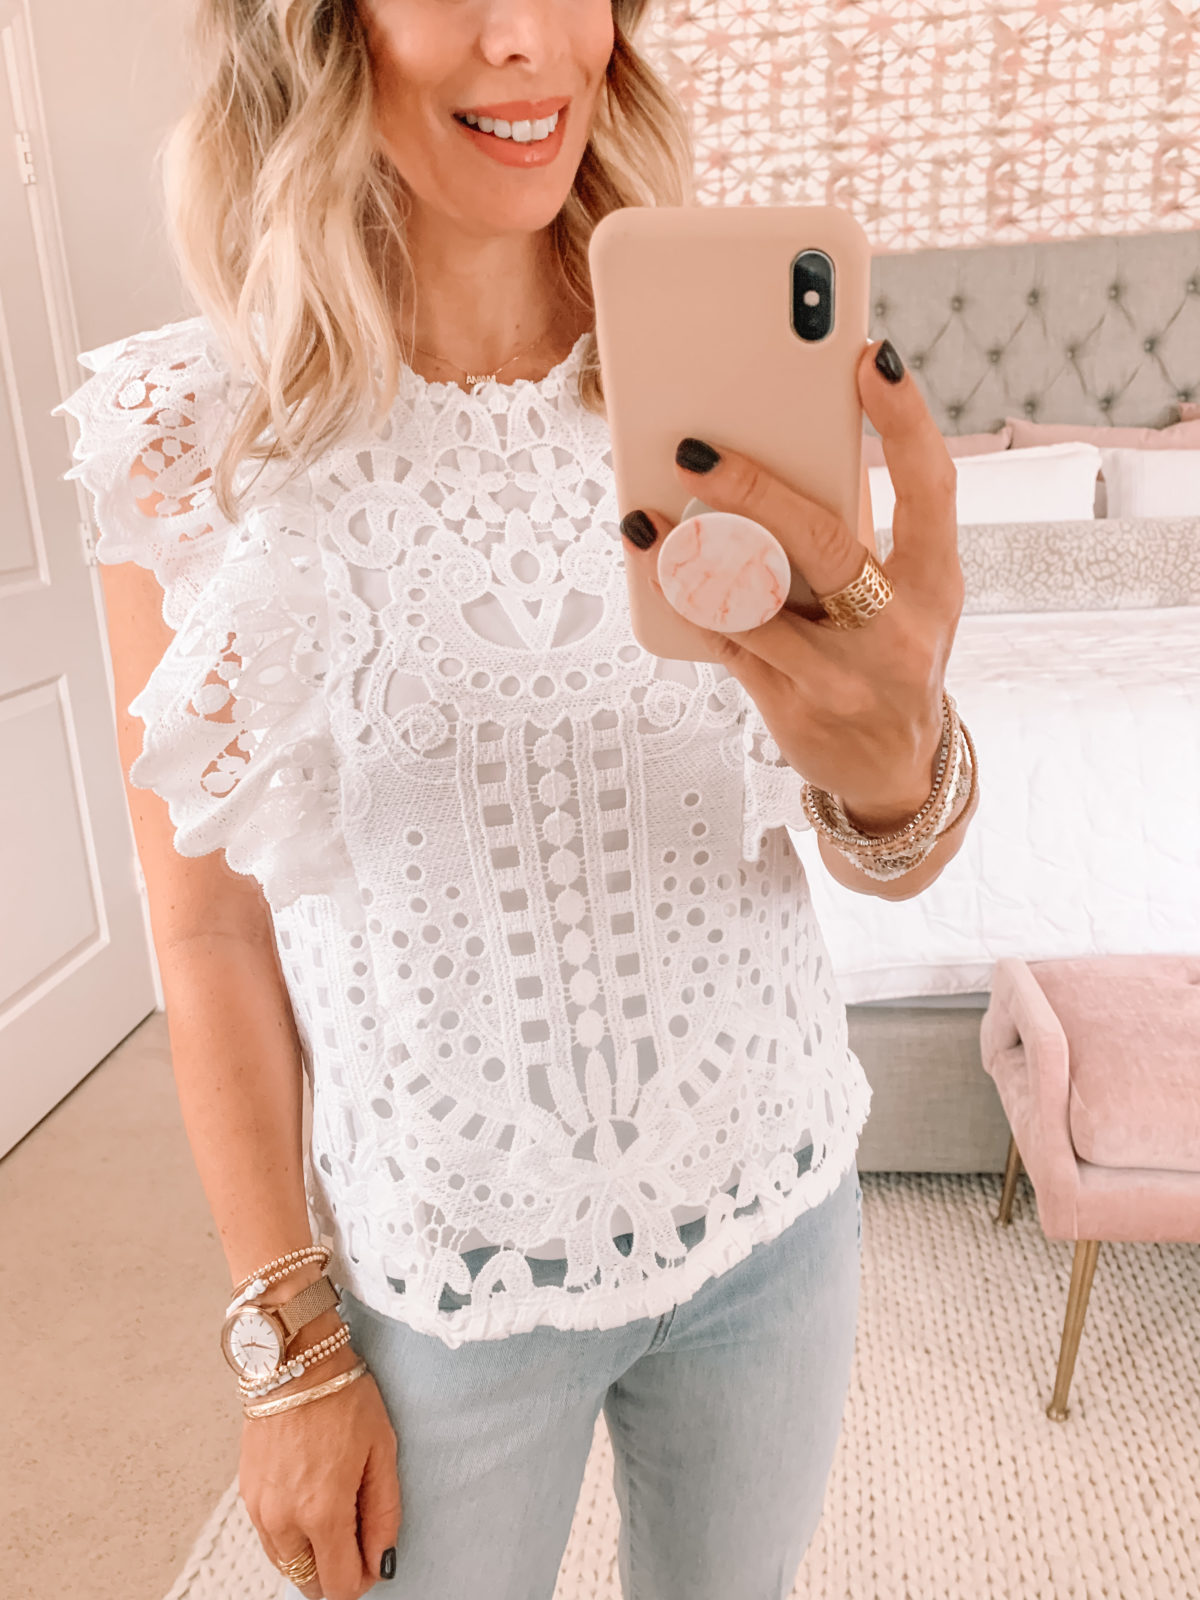 Dressing Room Finds Express, Lace Top, Jeans